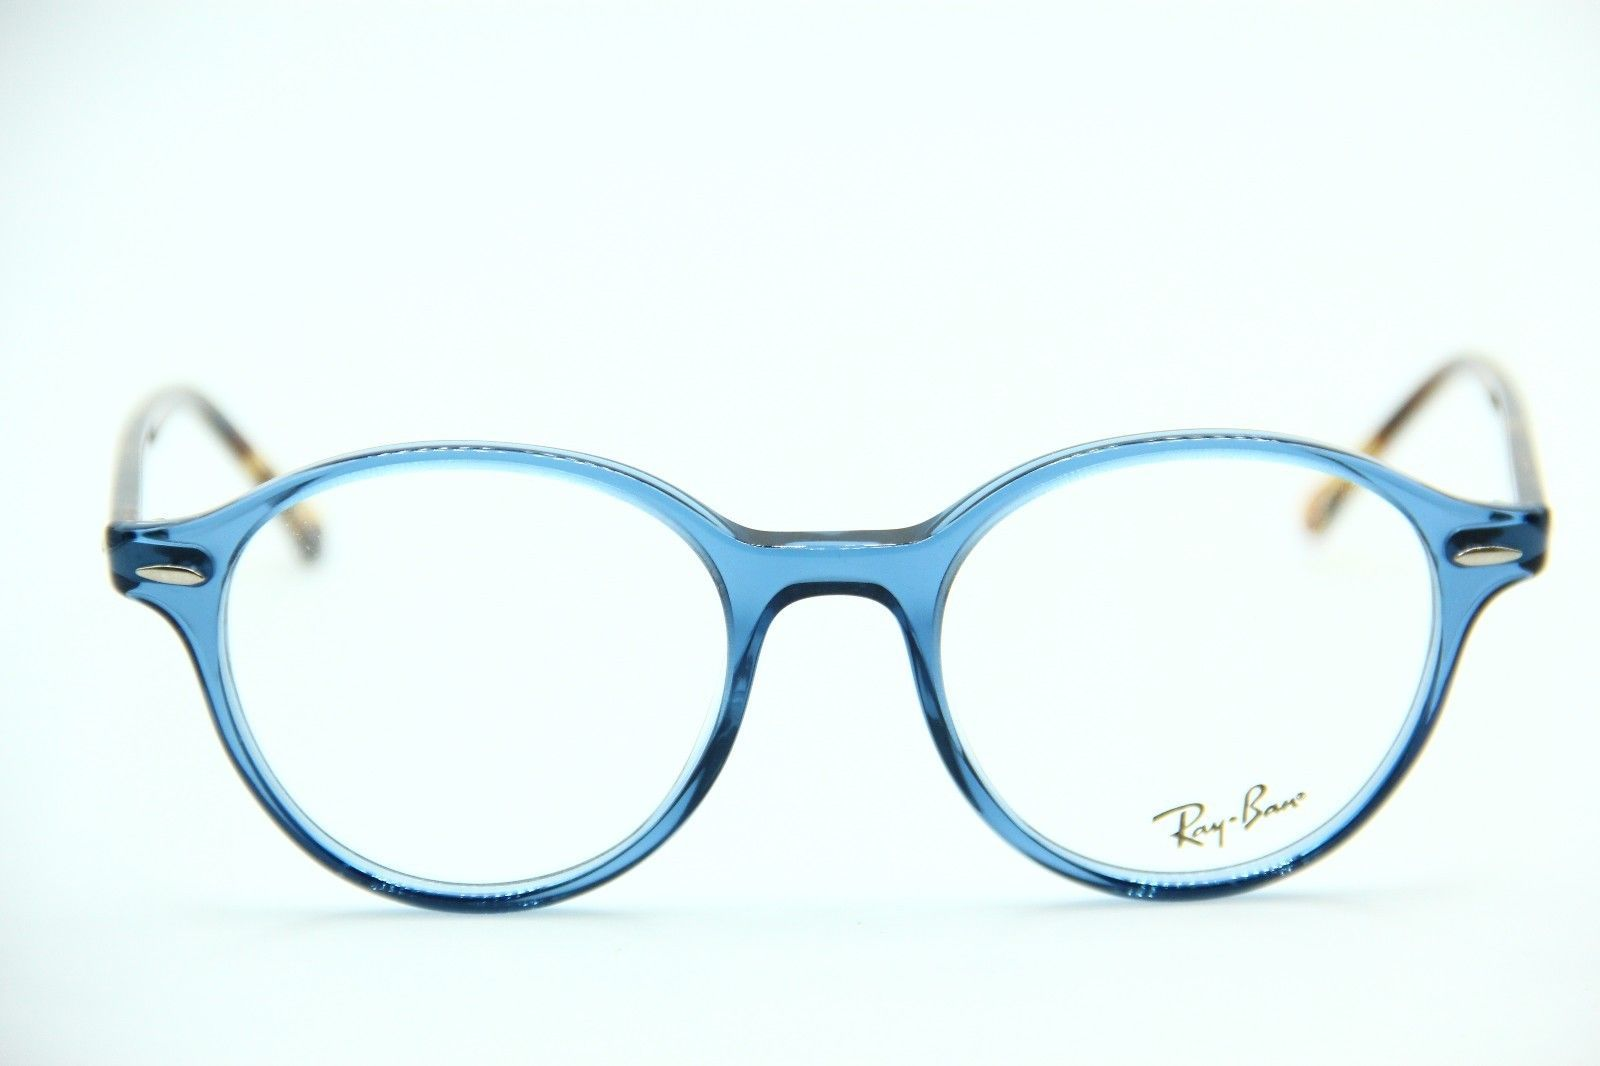 cc32ccdba2 NEW RAY-BAN RB 7118 8022 BLUE EYEGLASSES AUTHENTIC RX RB7118 50-19